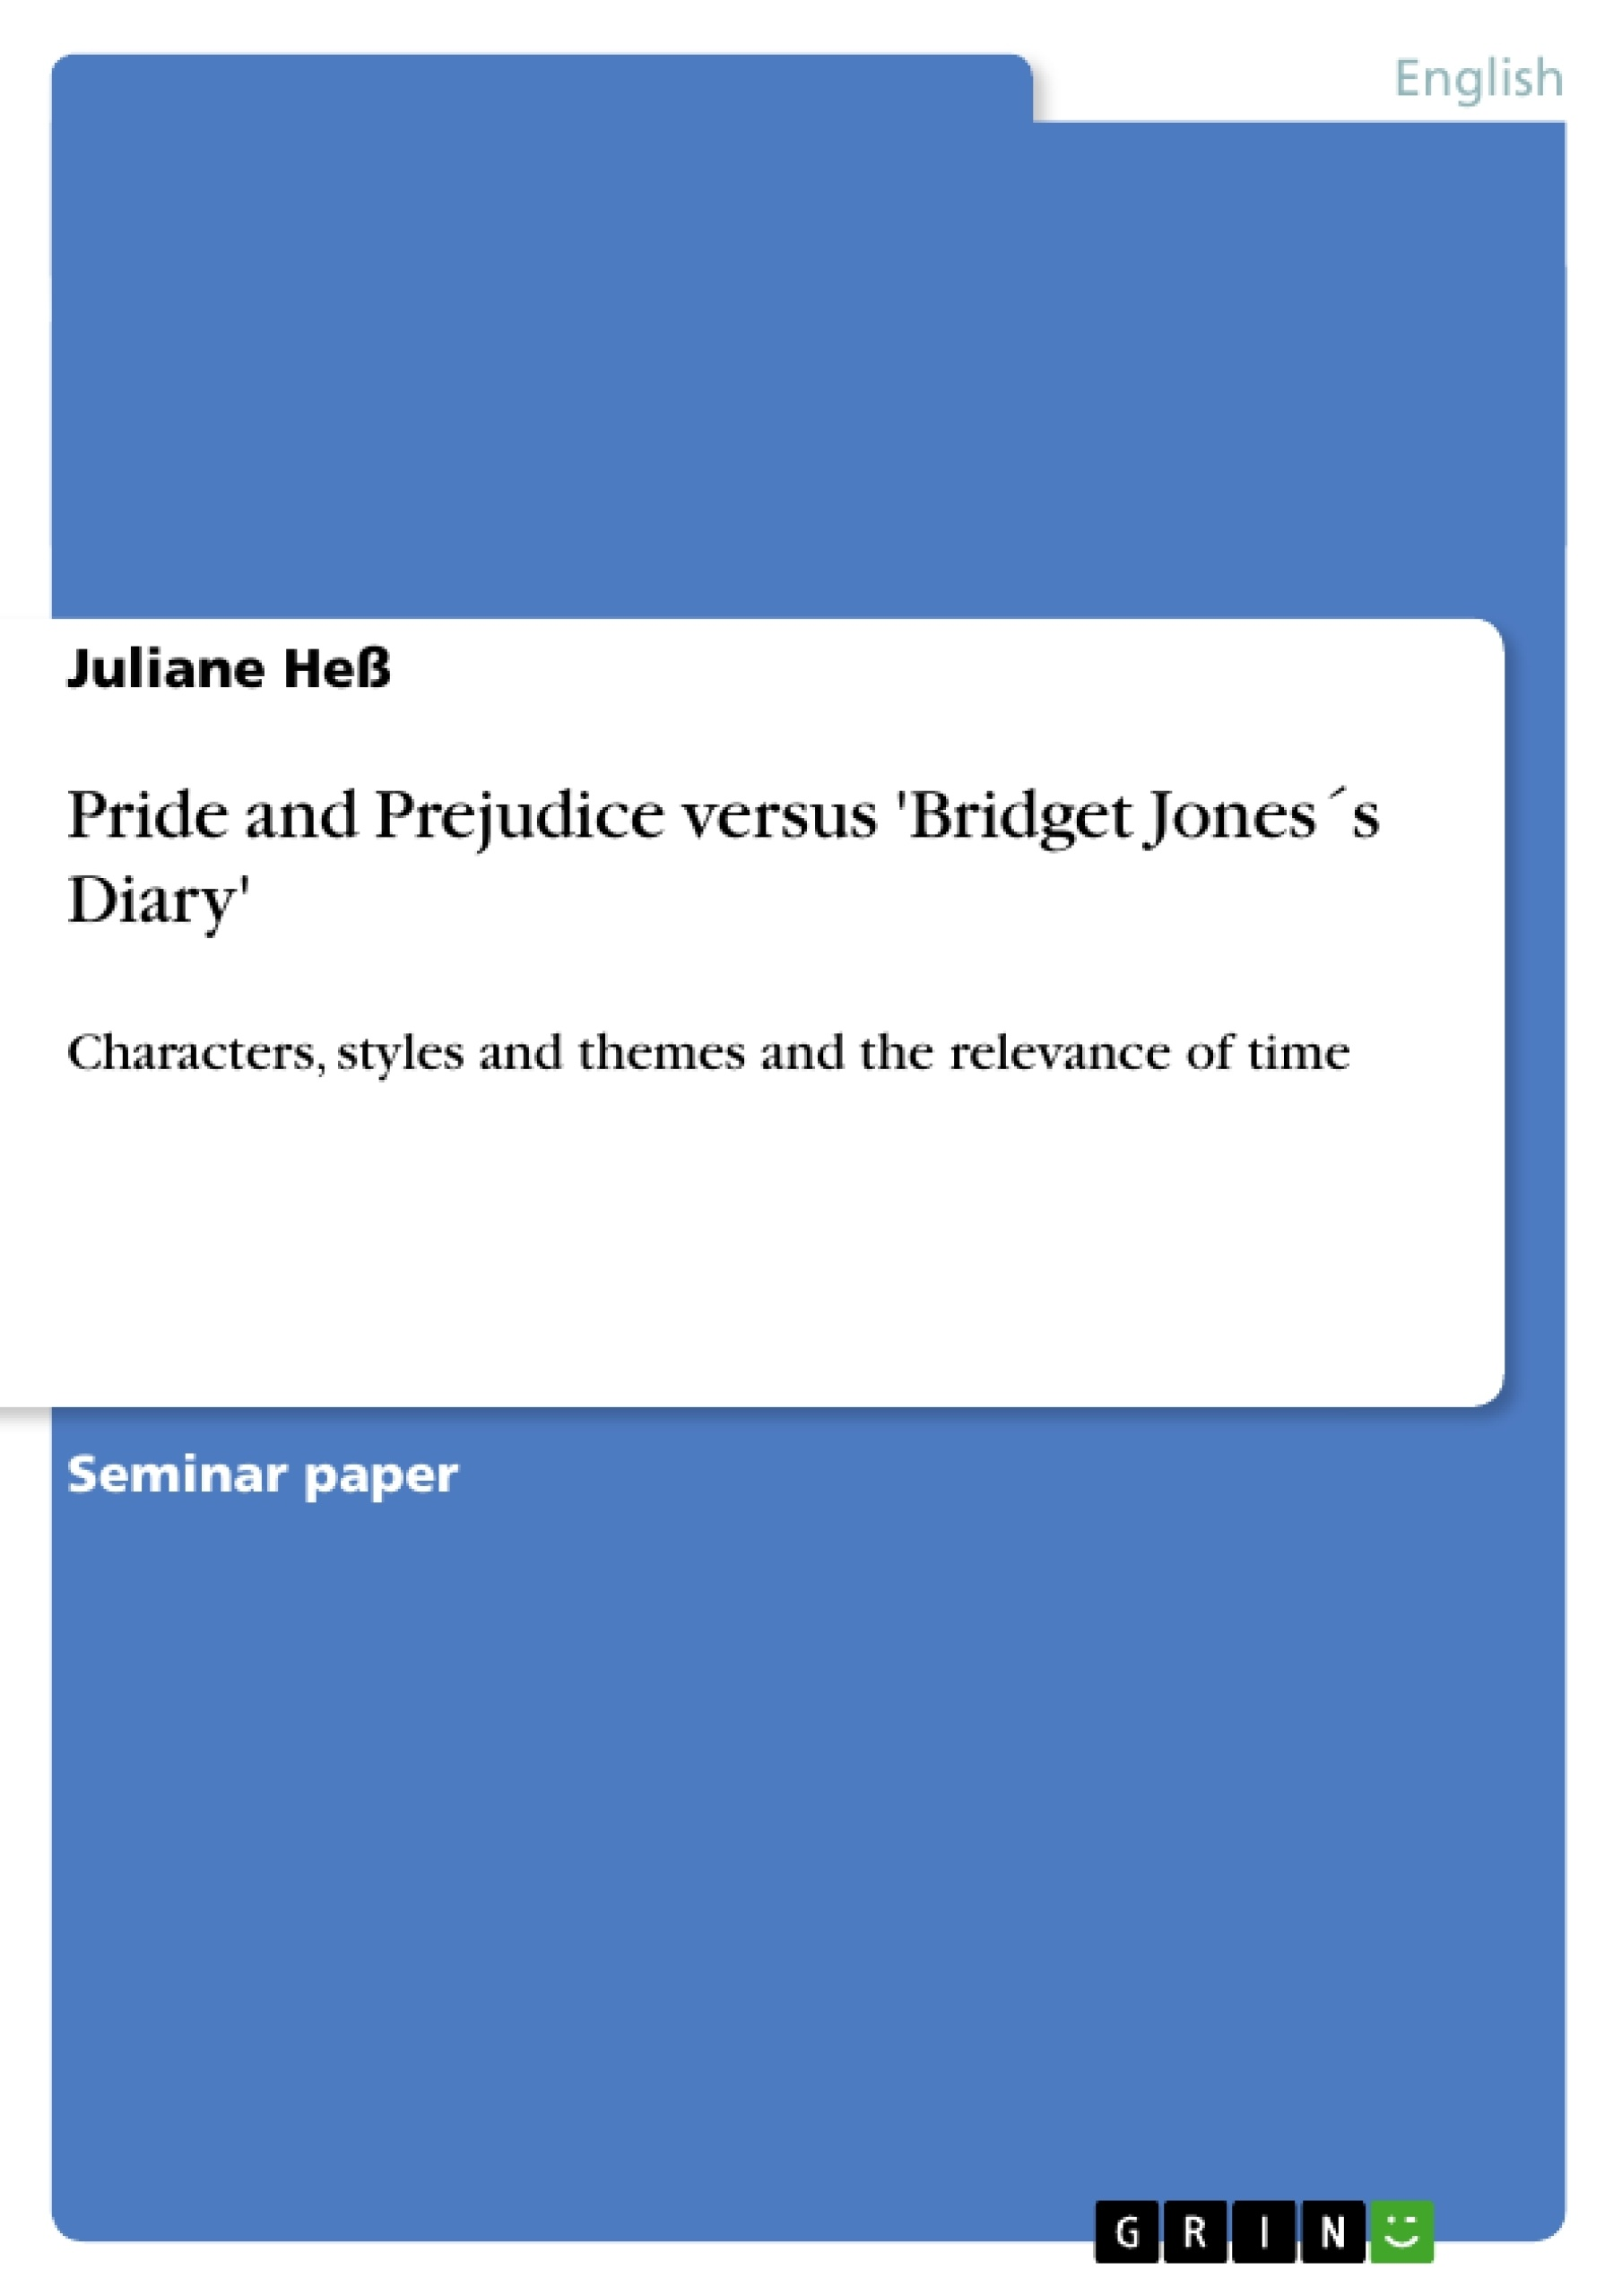 pride and prejudice versus bridget jones´s diary publish your  pride and prejudice versus bridget jones´s diary publish your master s thesis bachelor s thesis essay or term paper